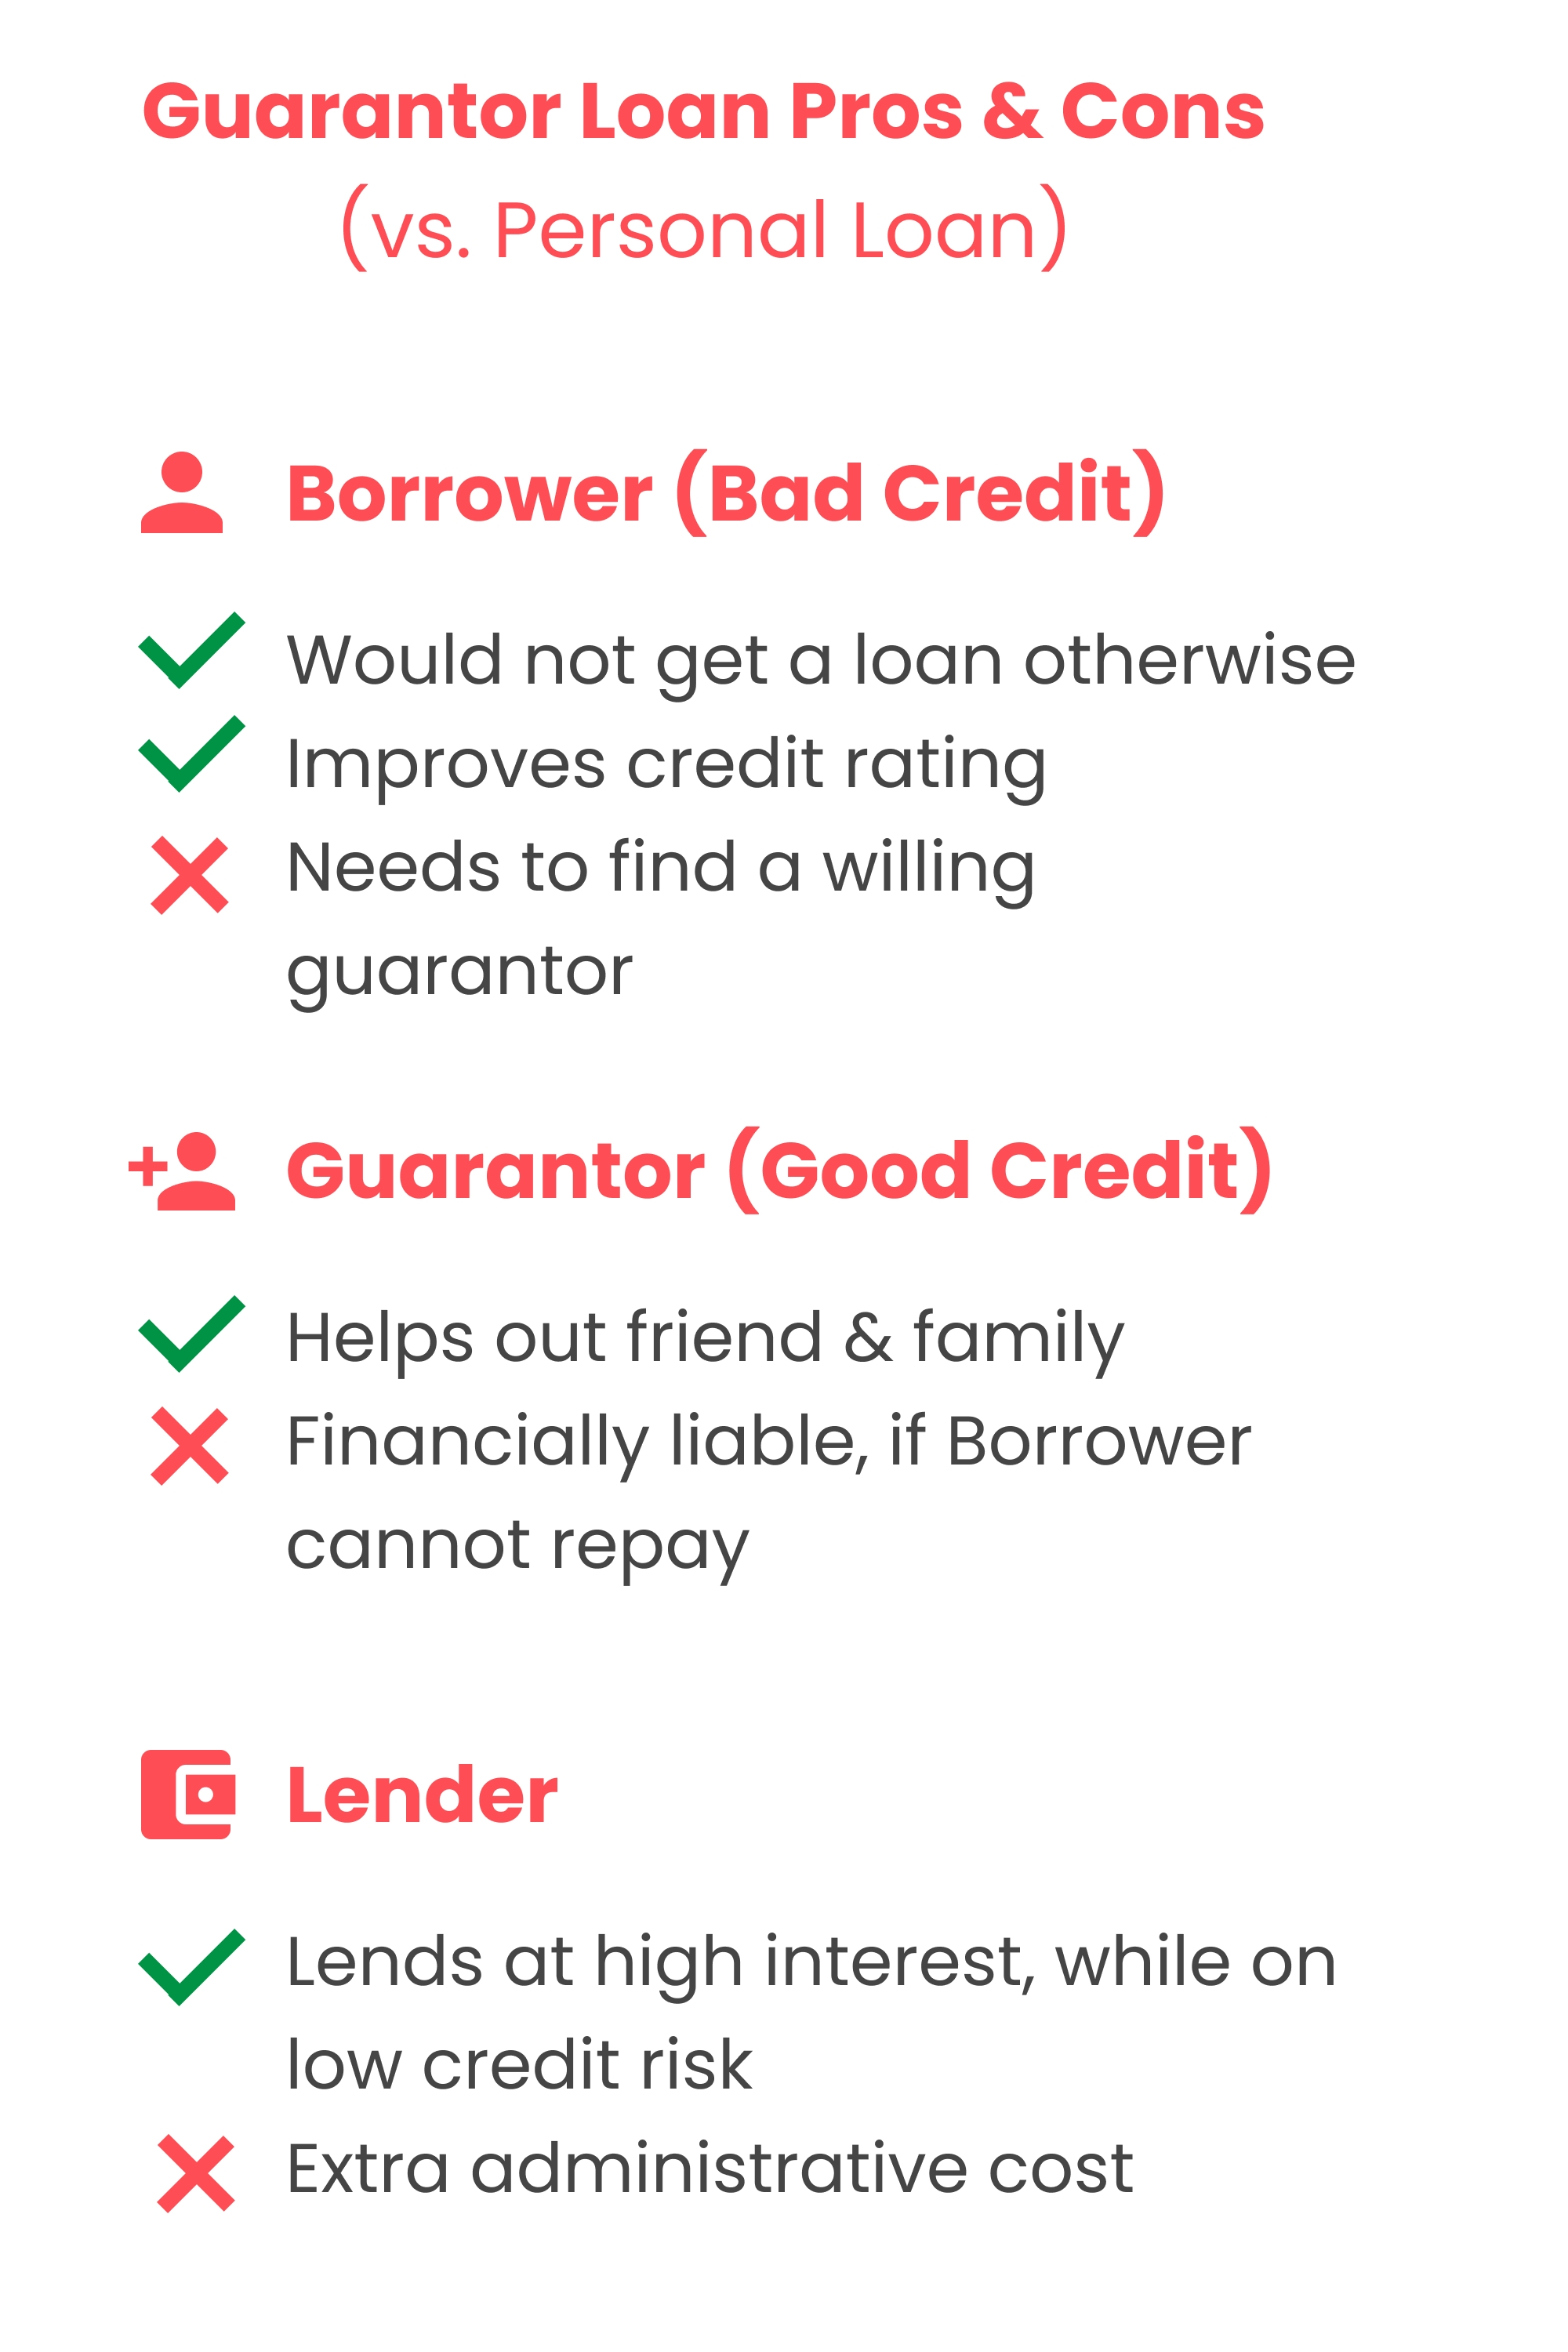 Guarantor Loan Pros and Cons vs. Personal Loan